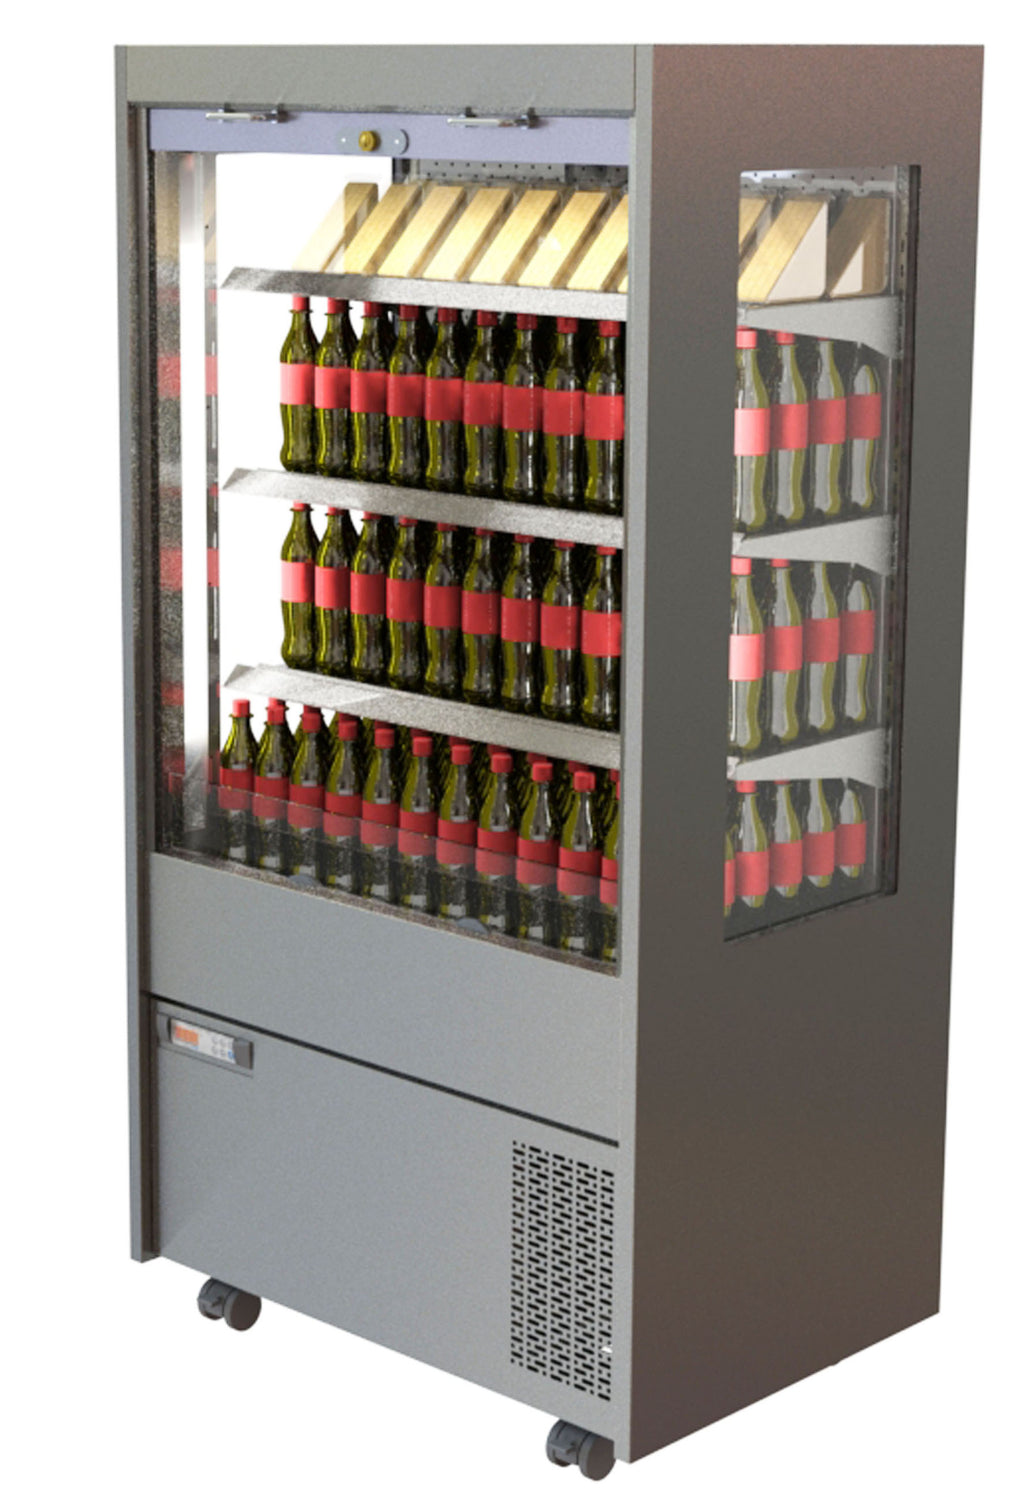 CED Chilled Multideck MM1500SHT(With Panoramic glazed side panels)